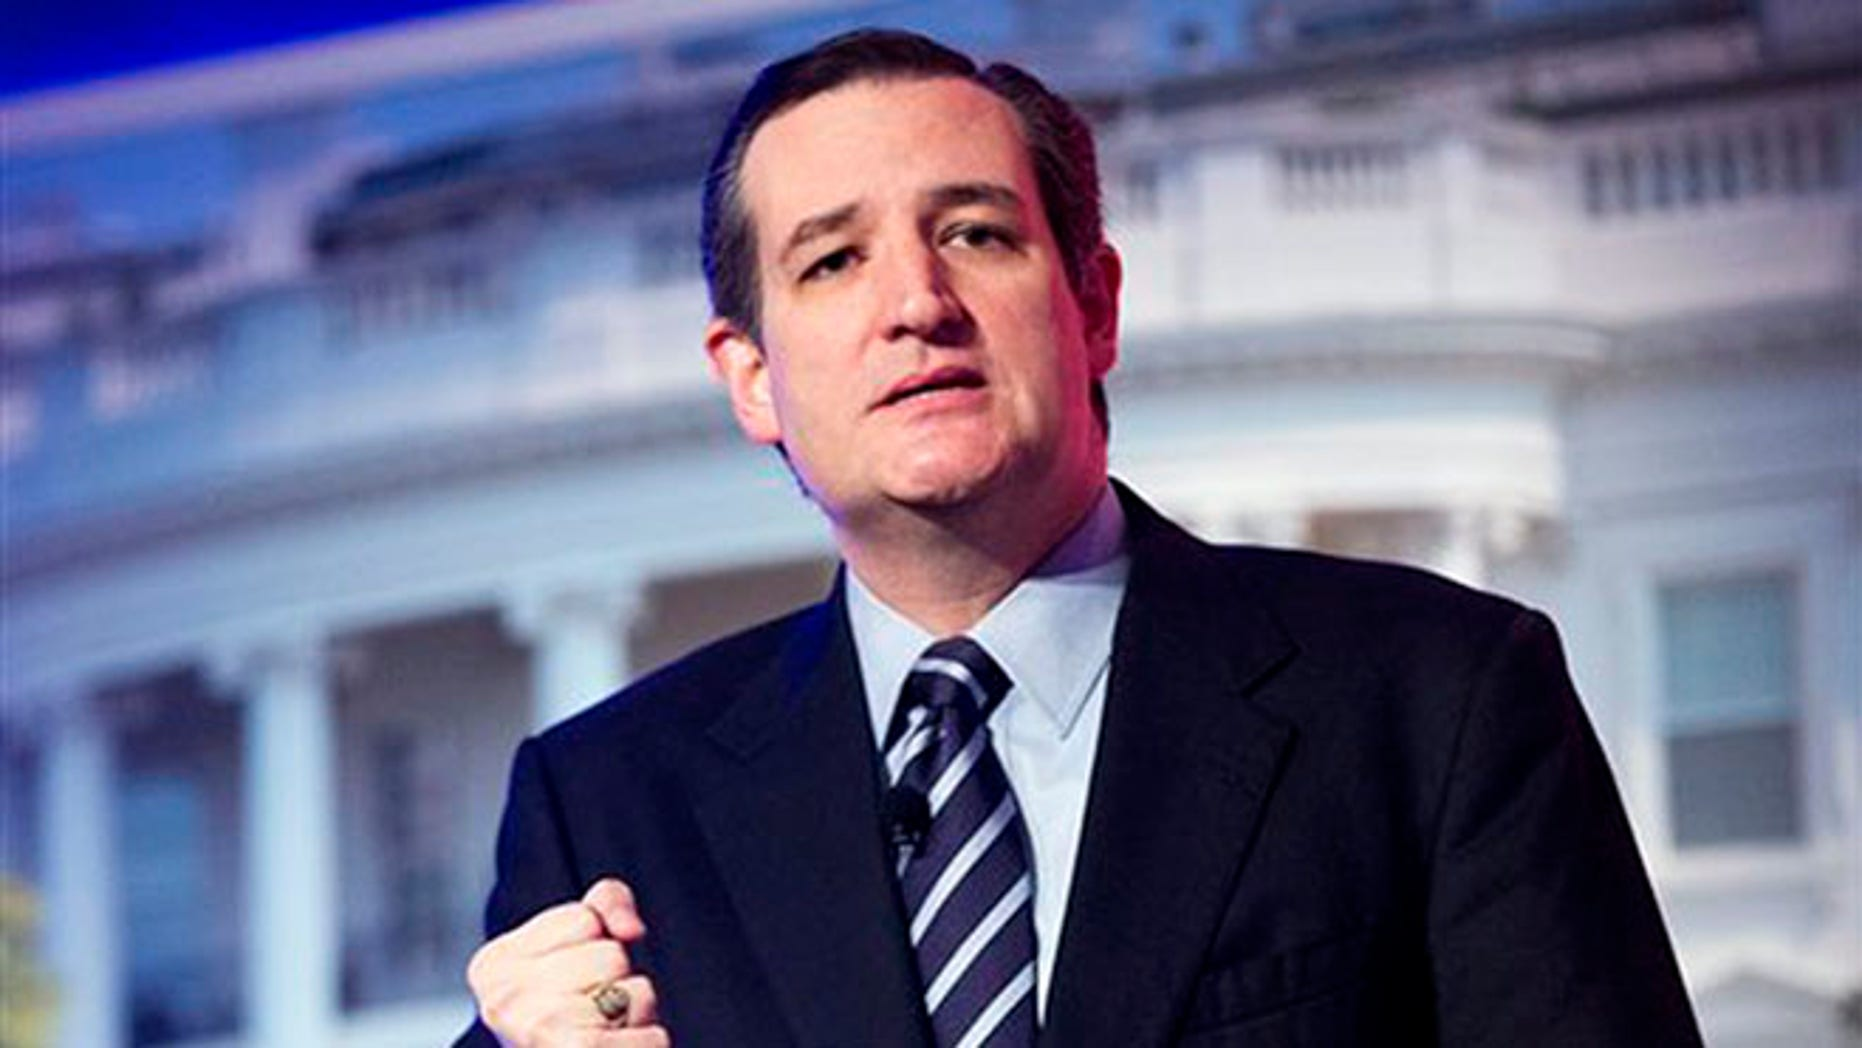 Sen. Ted Cruz, R-Texas, speaks at the International Association of Firefighters (IAFF) Legislative Conference and Presidential Forum in Washington.